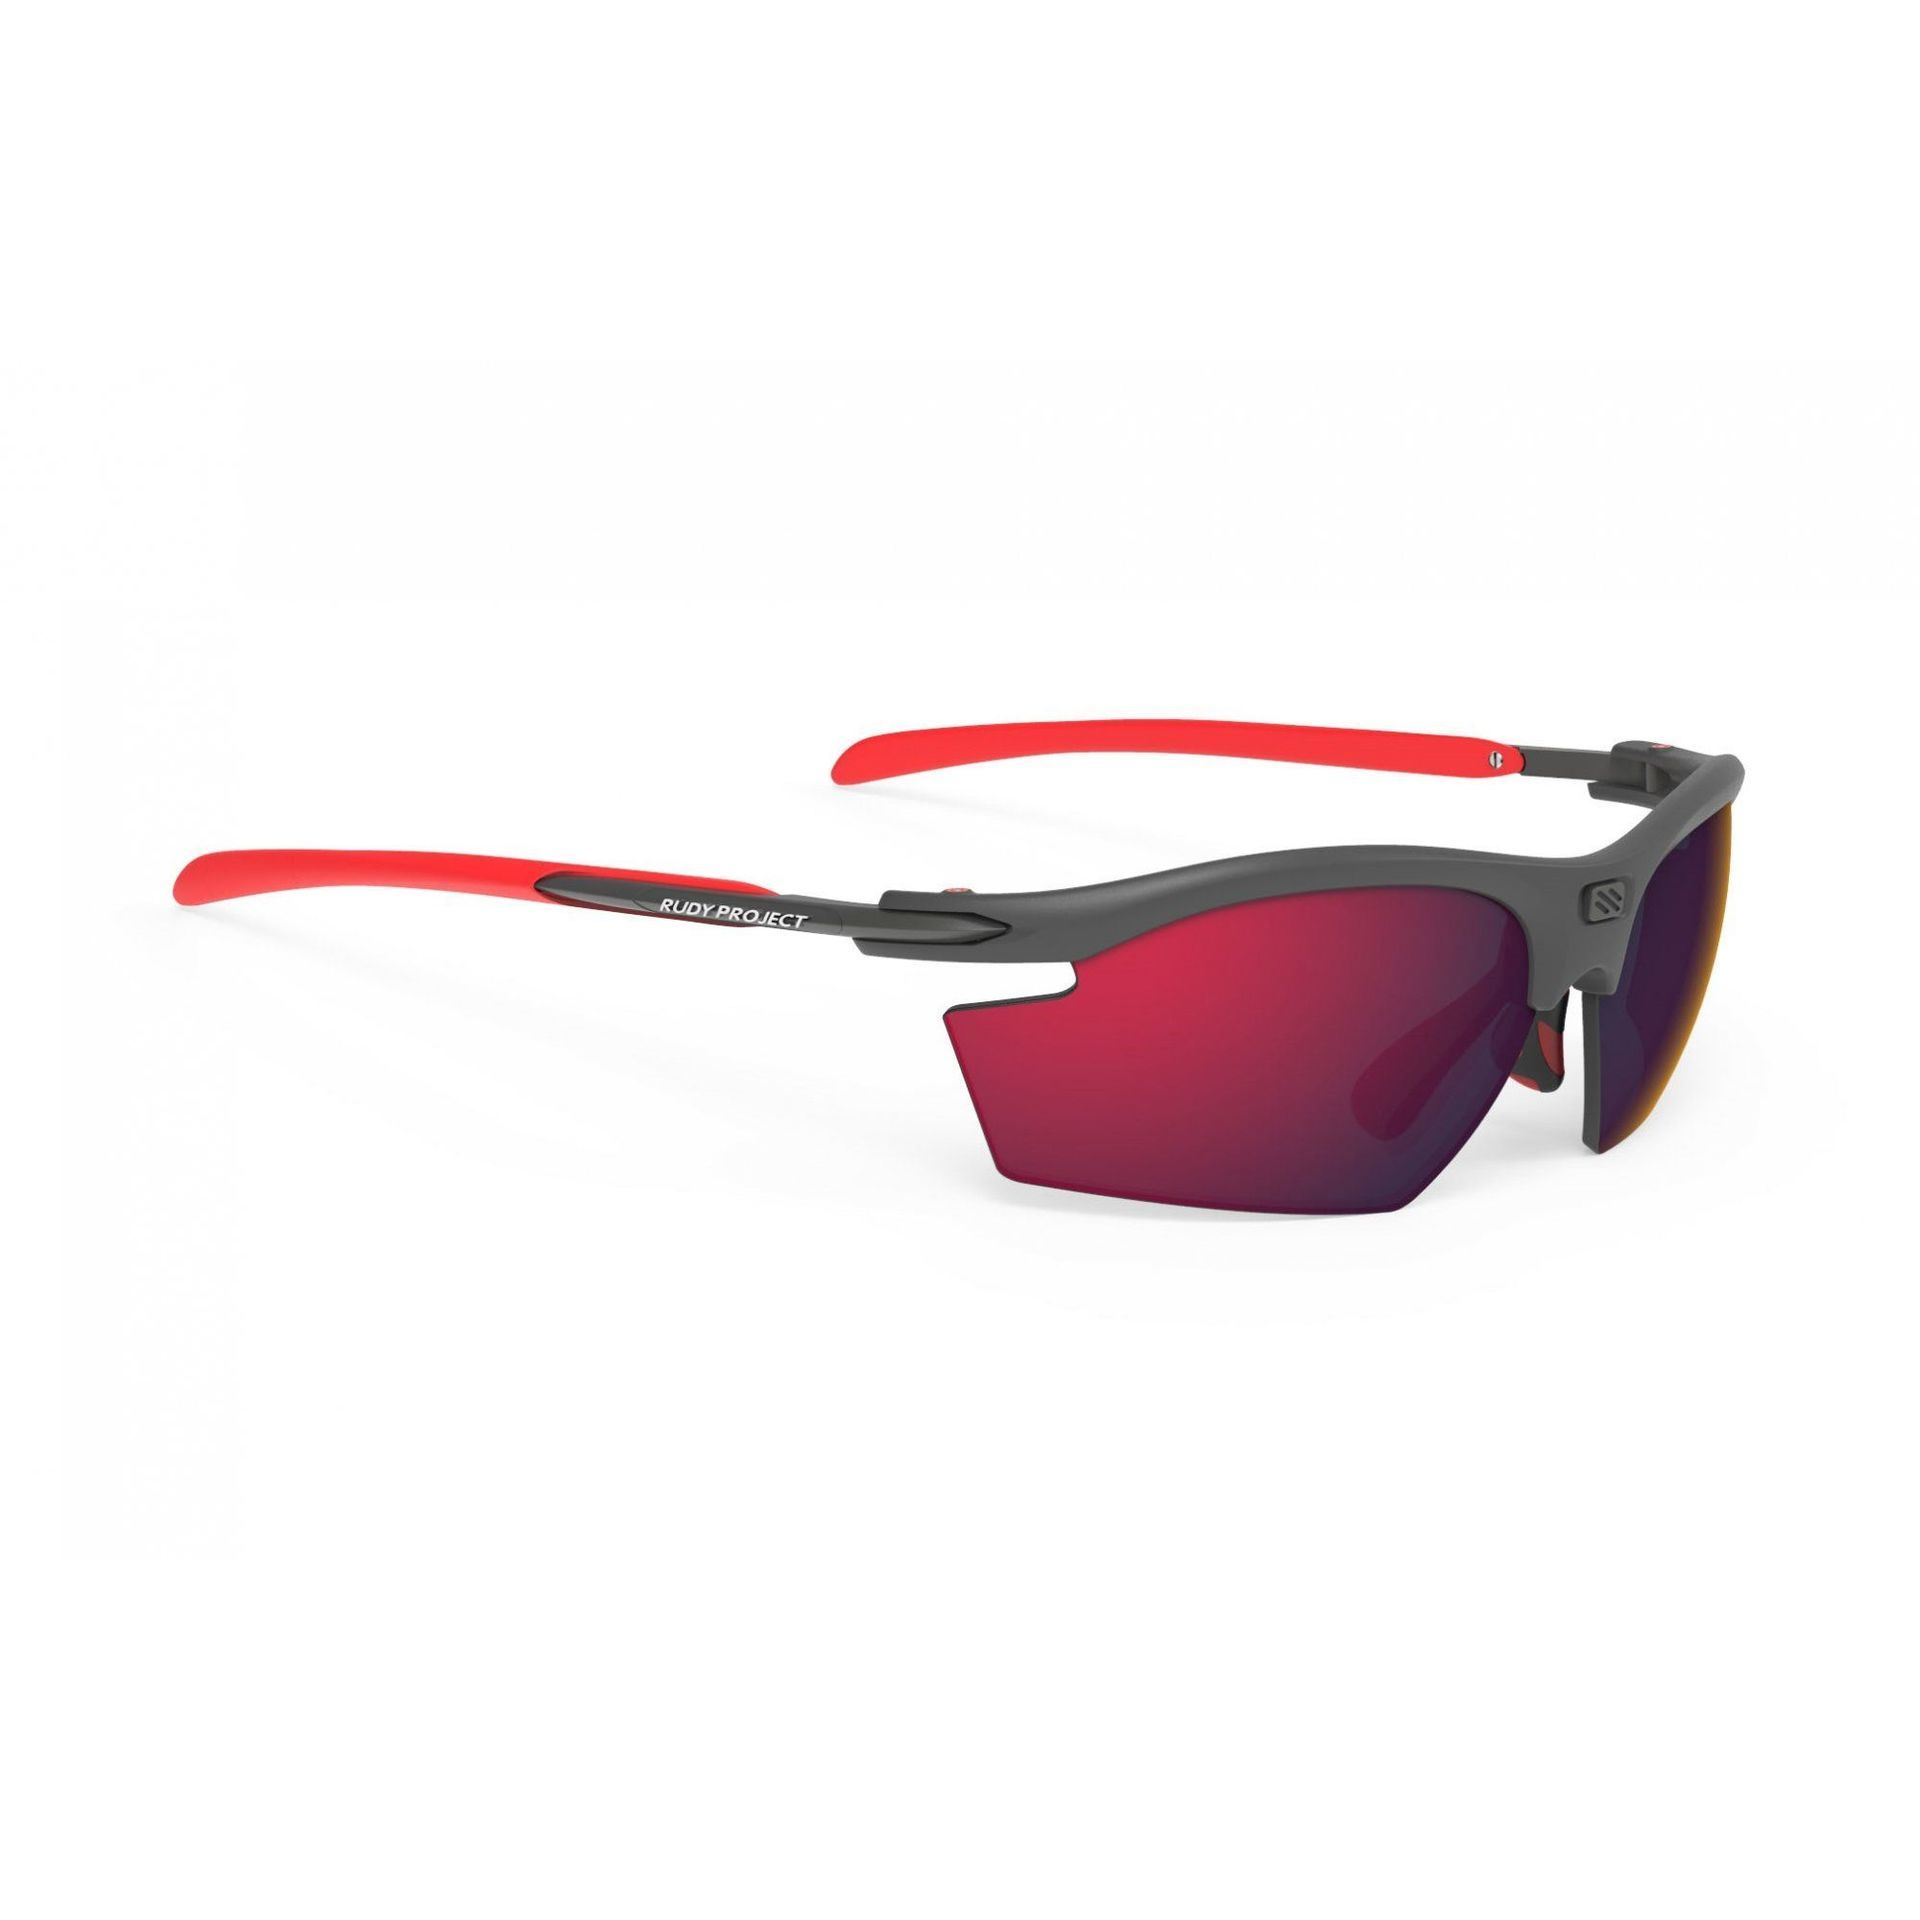 OKULARY RUDY PROJECT RYDON GRAPHITE|RED + ML RED SP533898 1